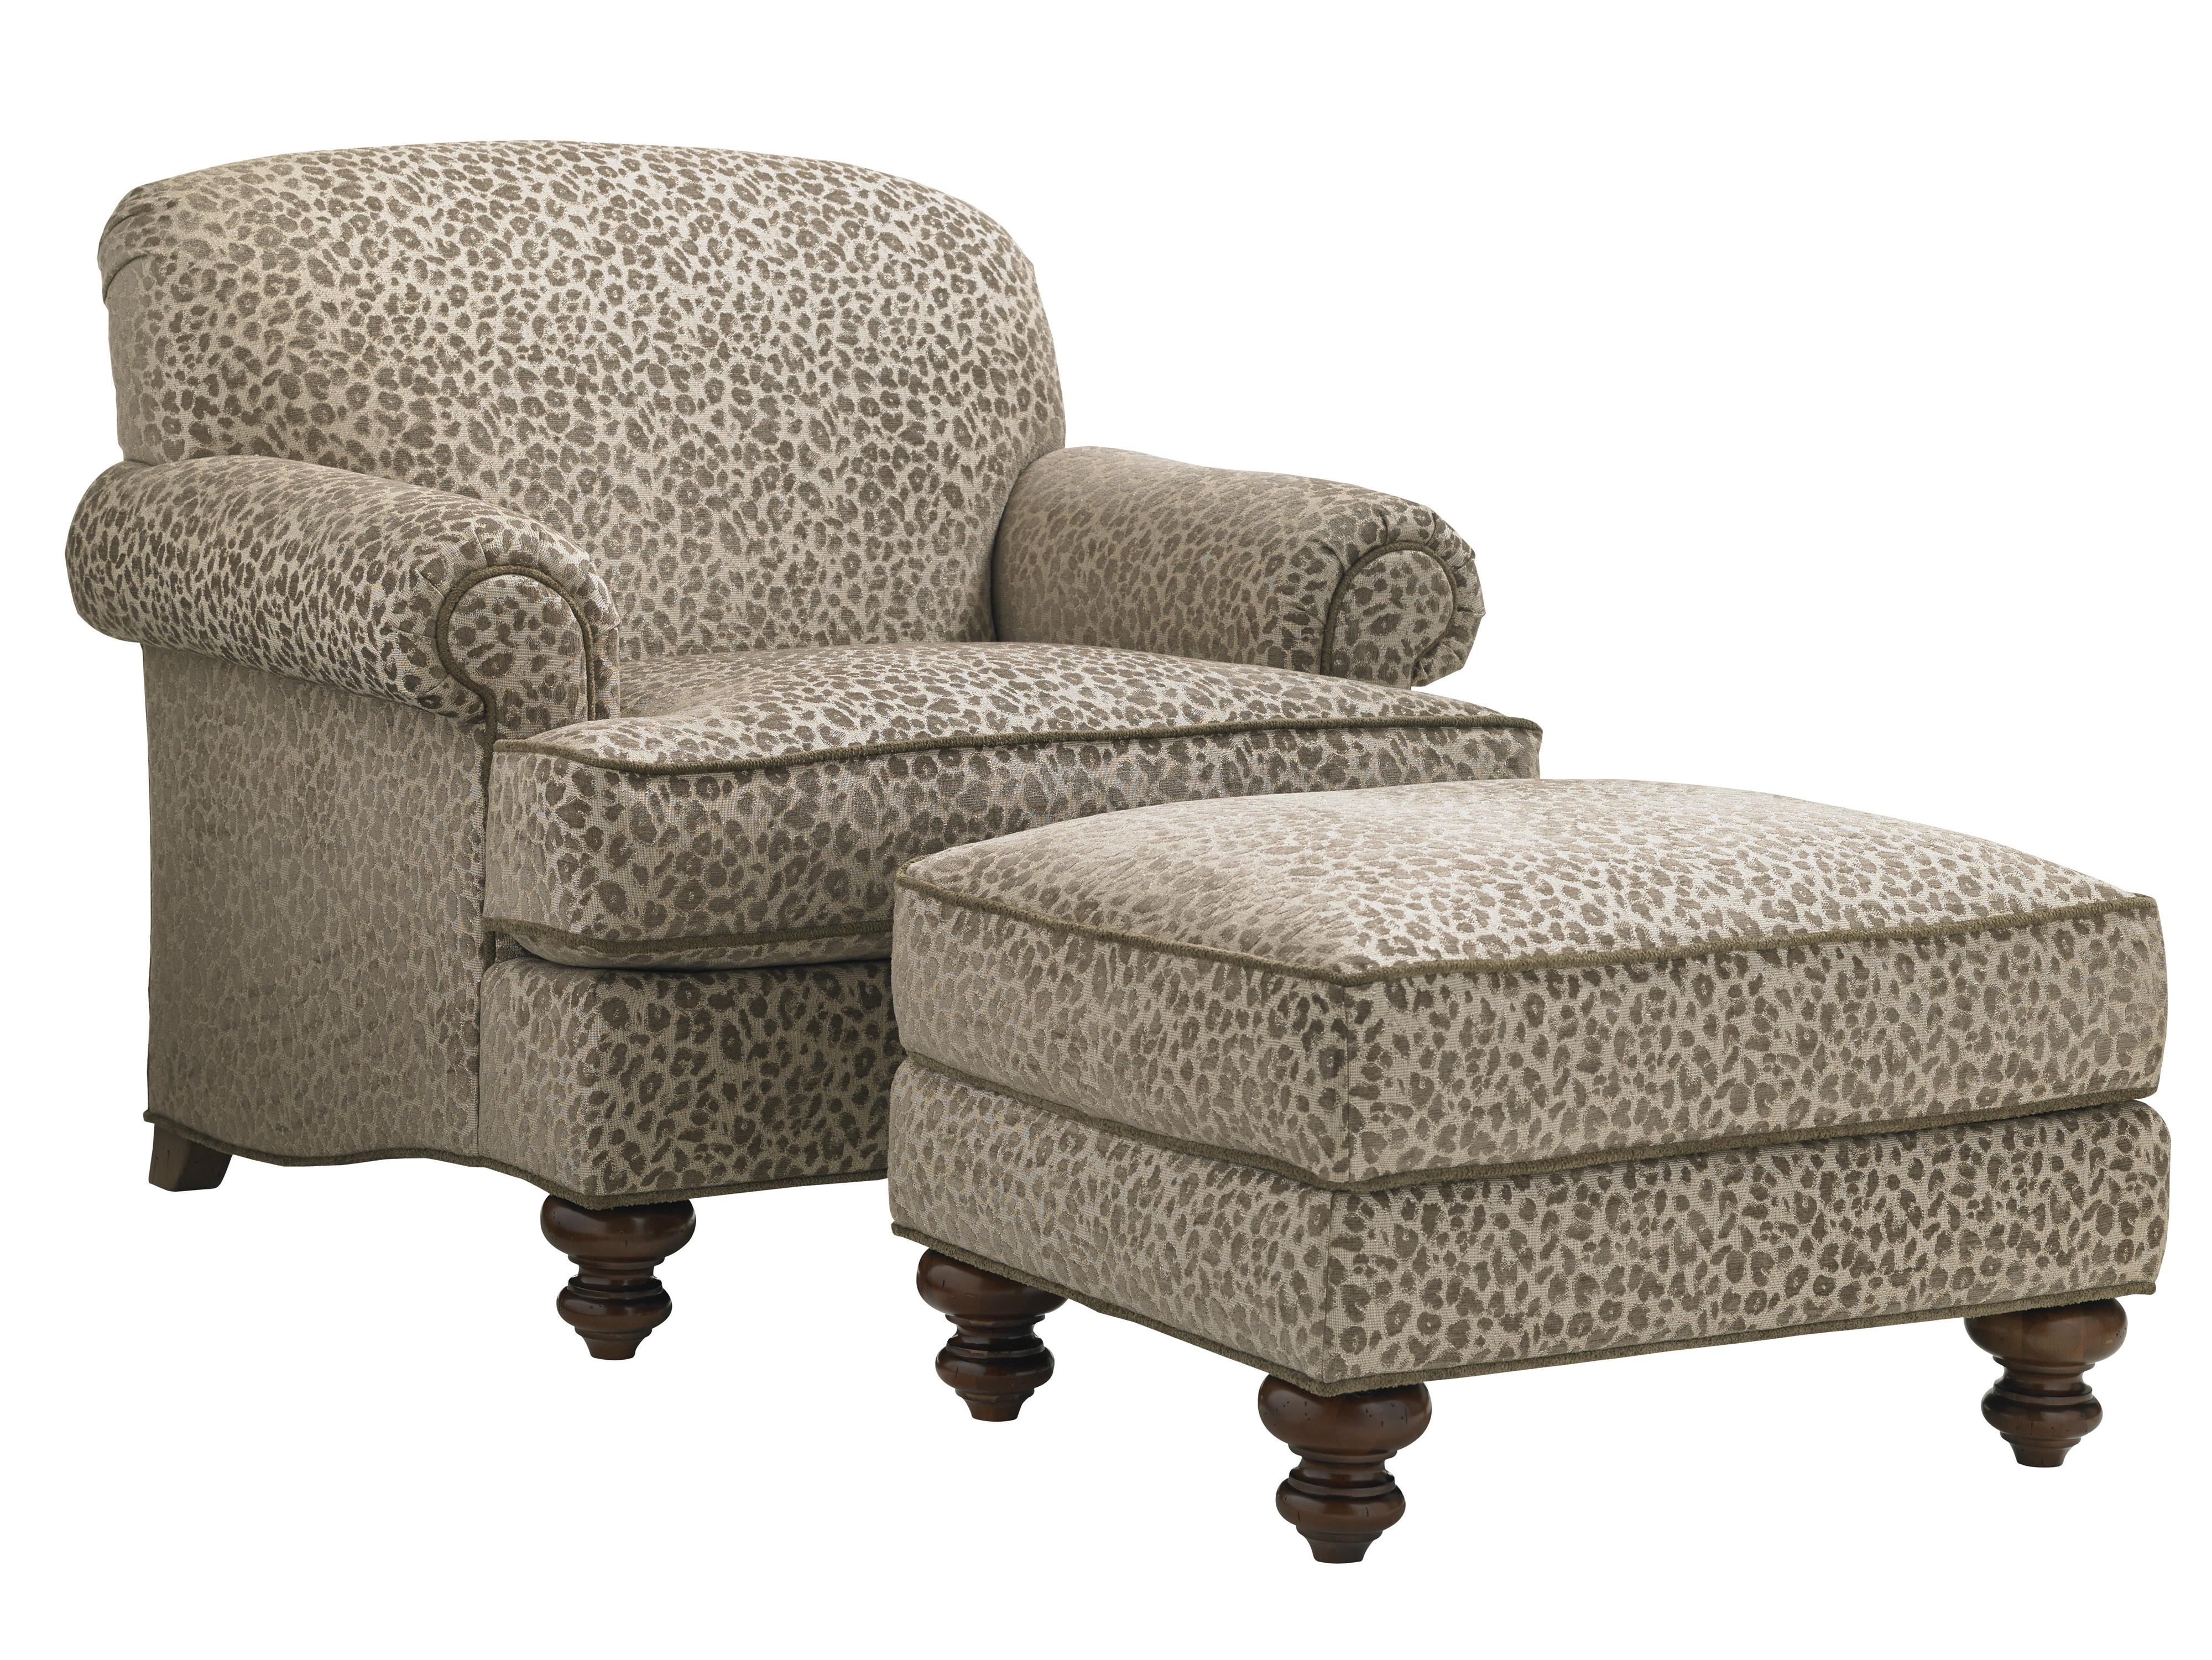 Coventry Hills Asbury Chair and Ottoman Set by Lexington at Baer's Furniture